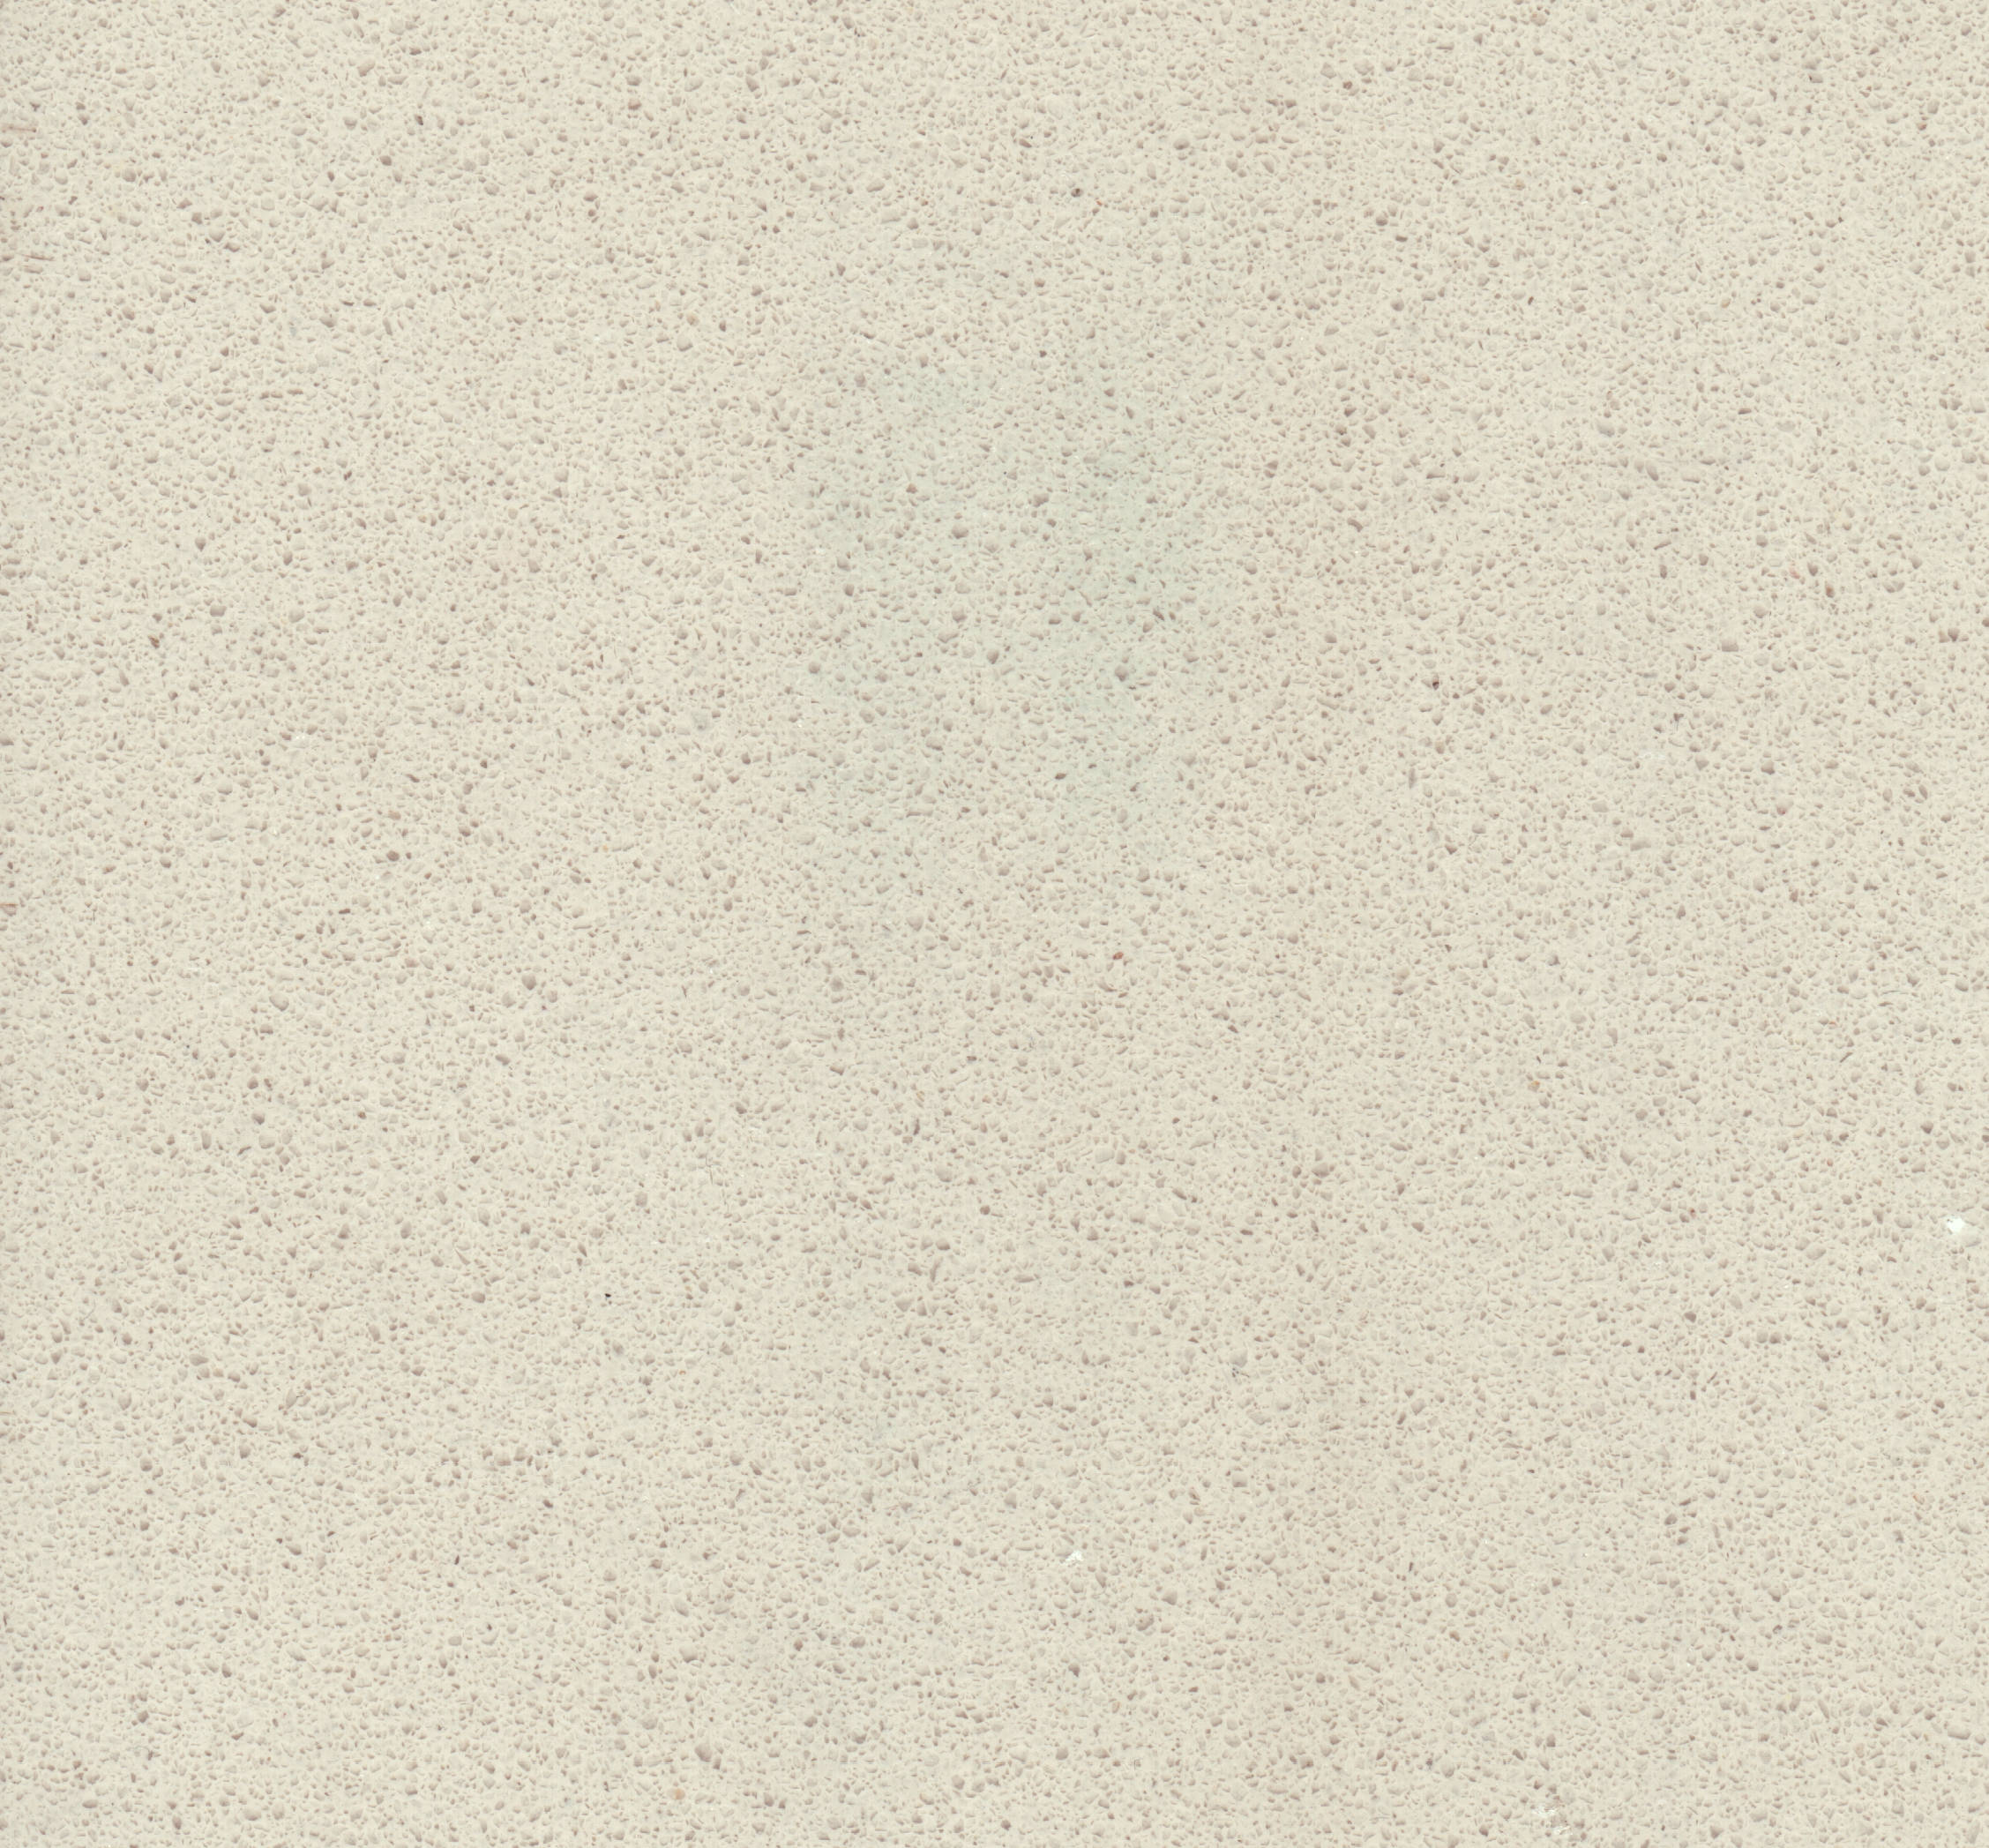 Atem Beige Light 0022